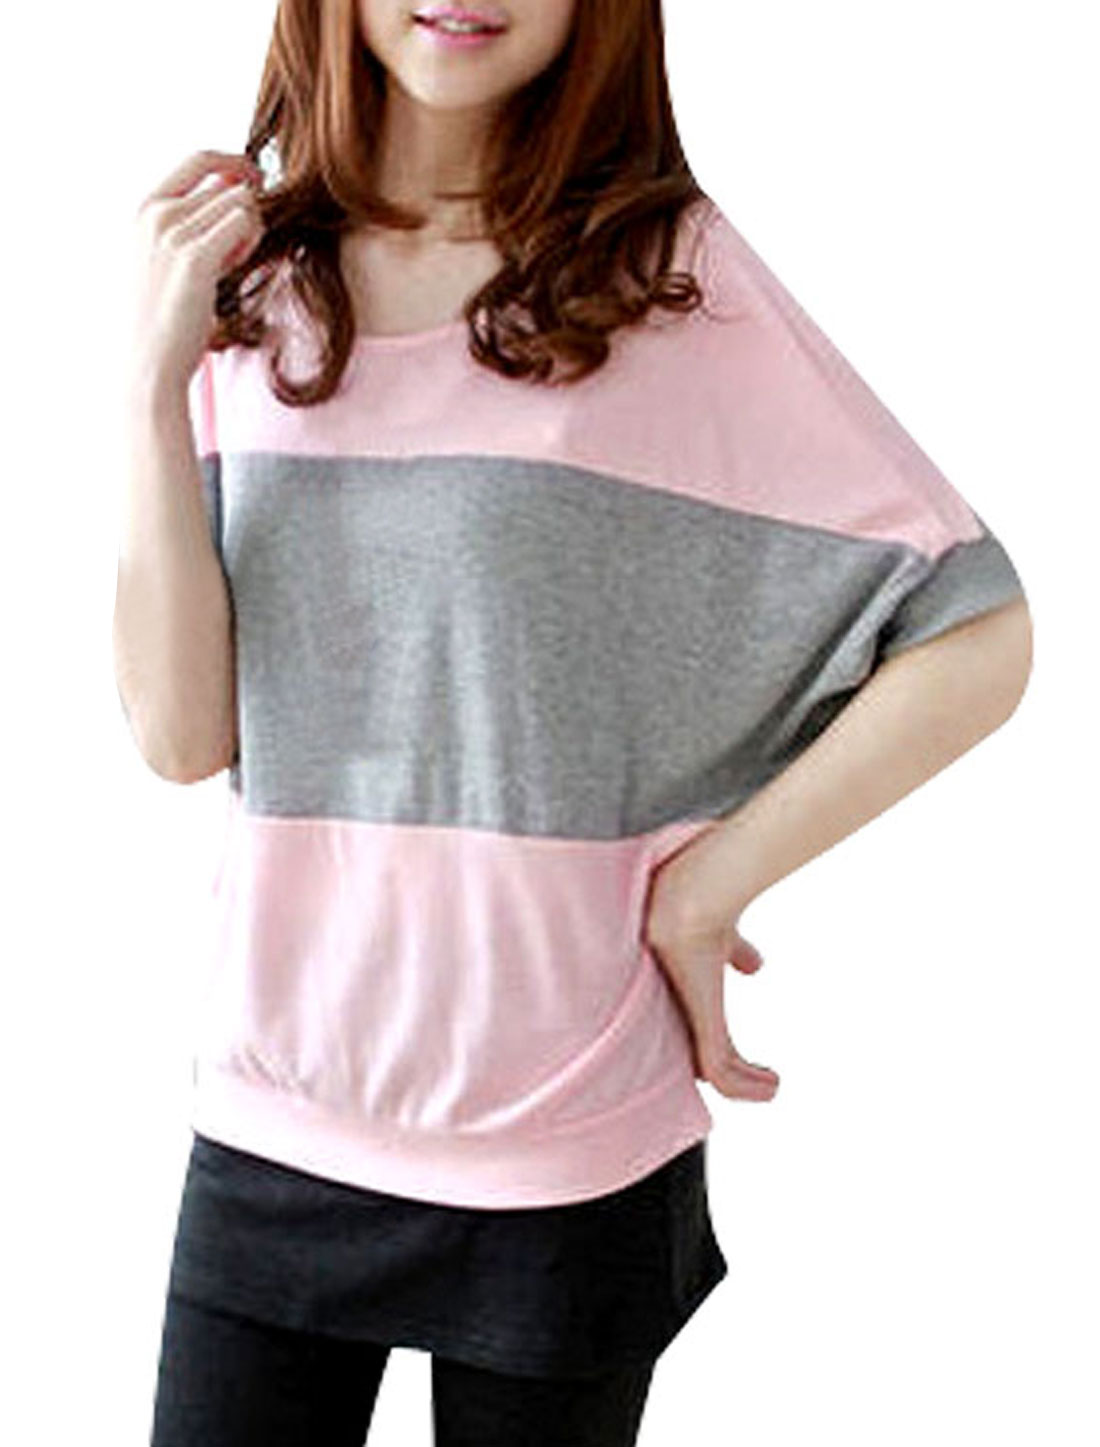 Women Batwing Sleeves Casual Loose T-Shirt Blouse Pink Gray M